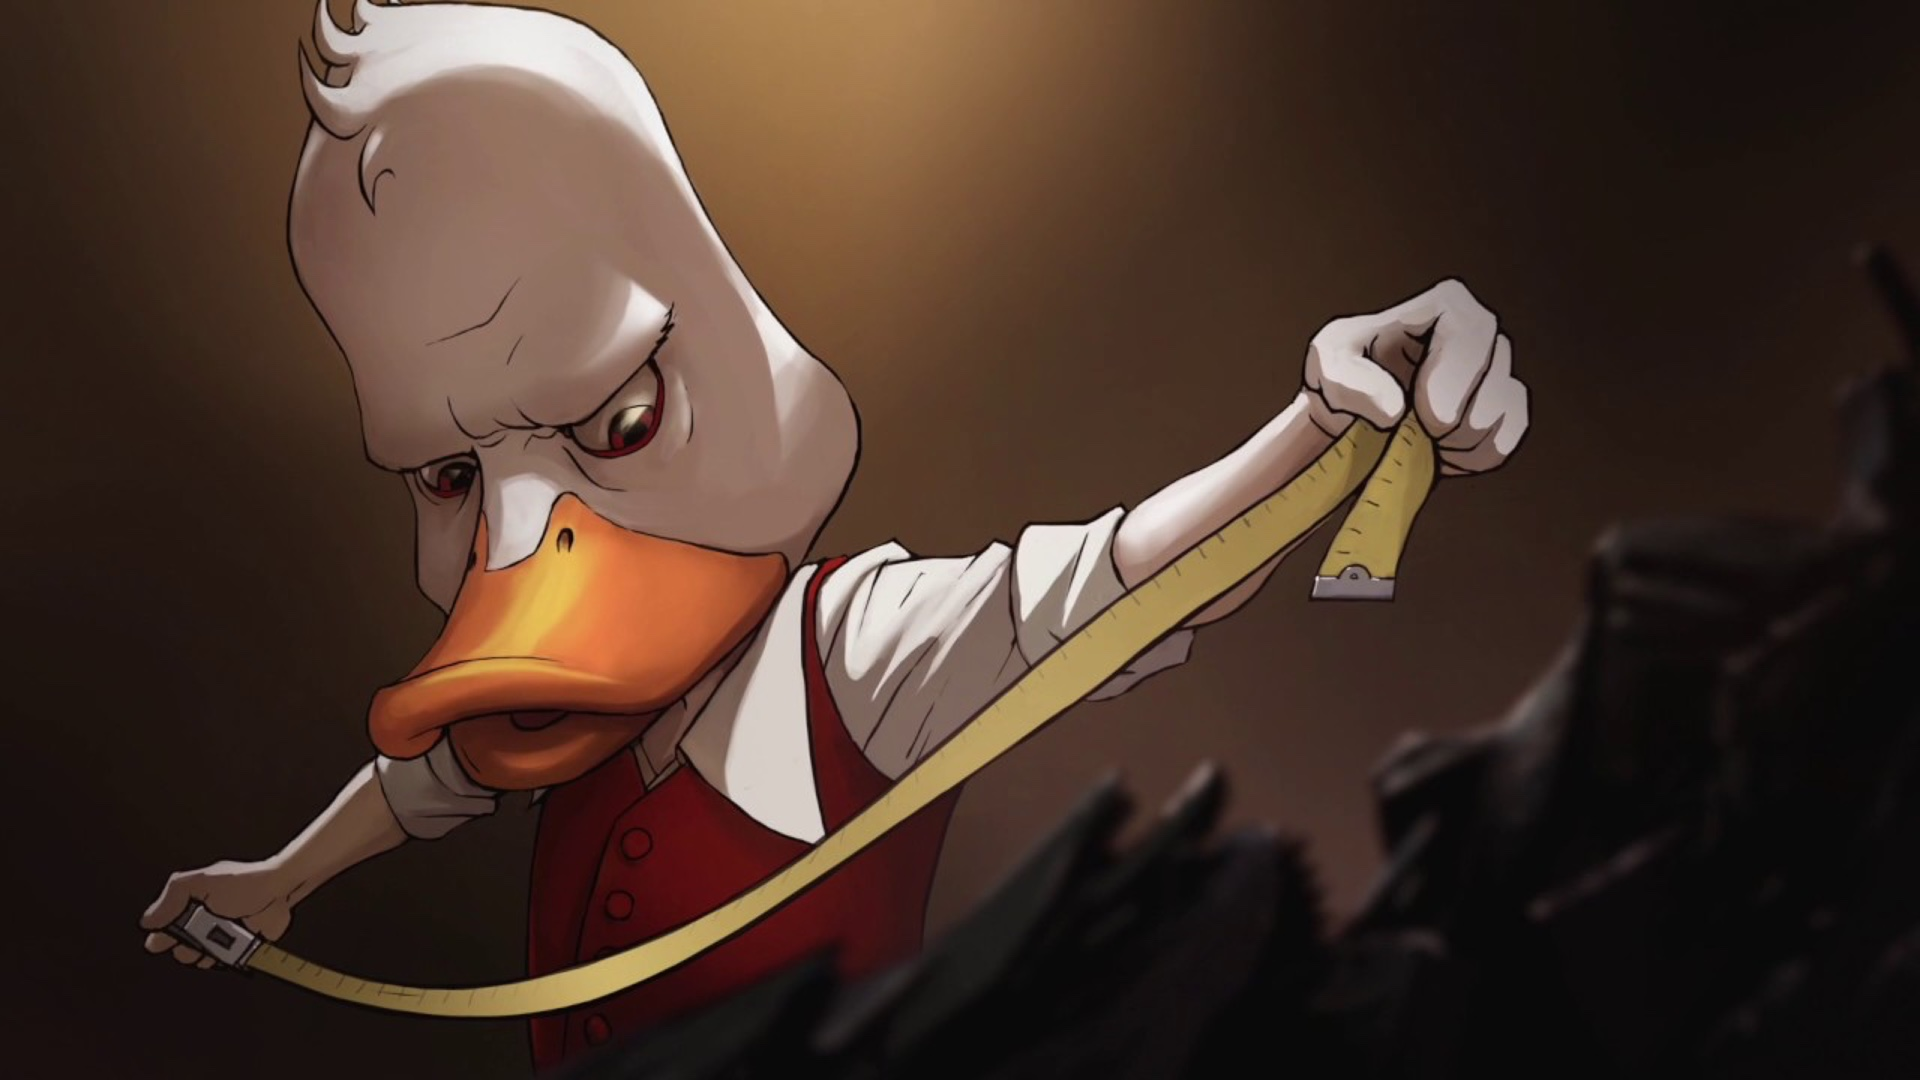 kevin-smith-talks-about-his-howard-the-duck-animated-series-i-get-to-do-fowl-things-social.jpg